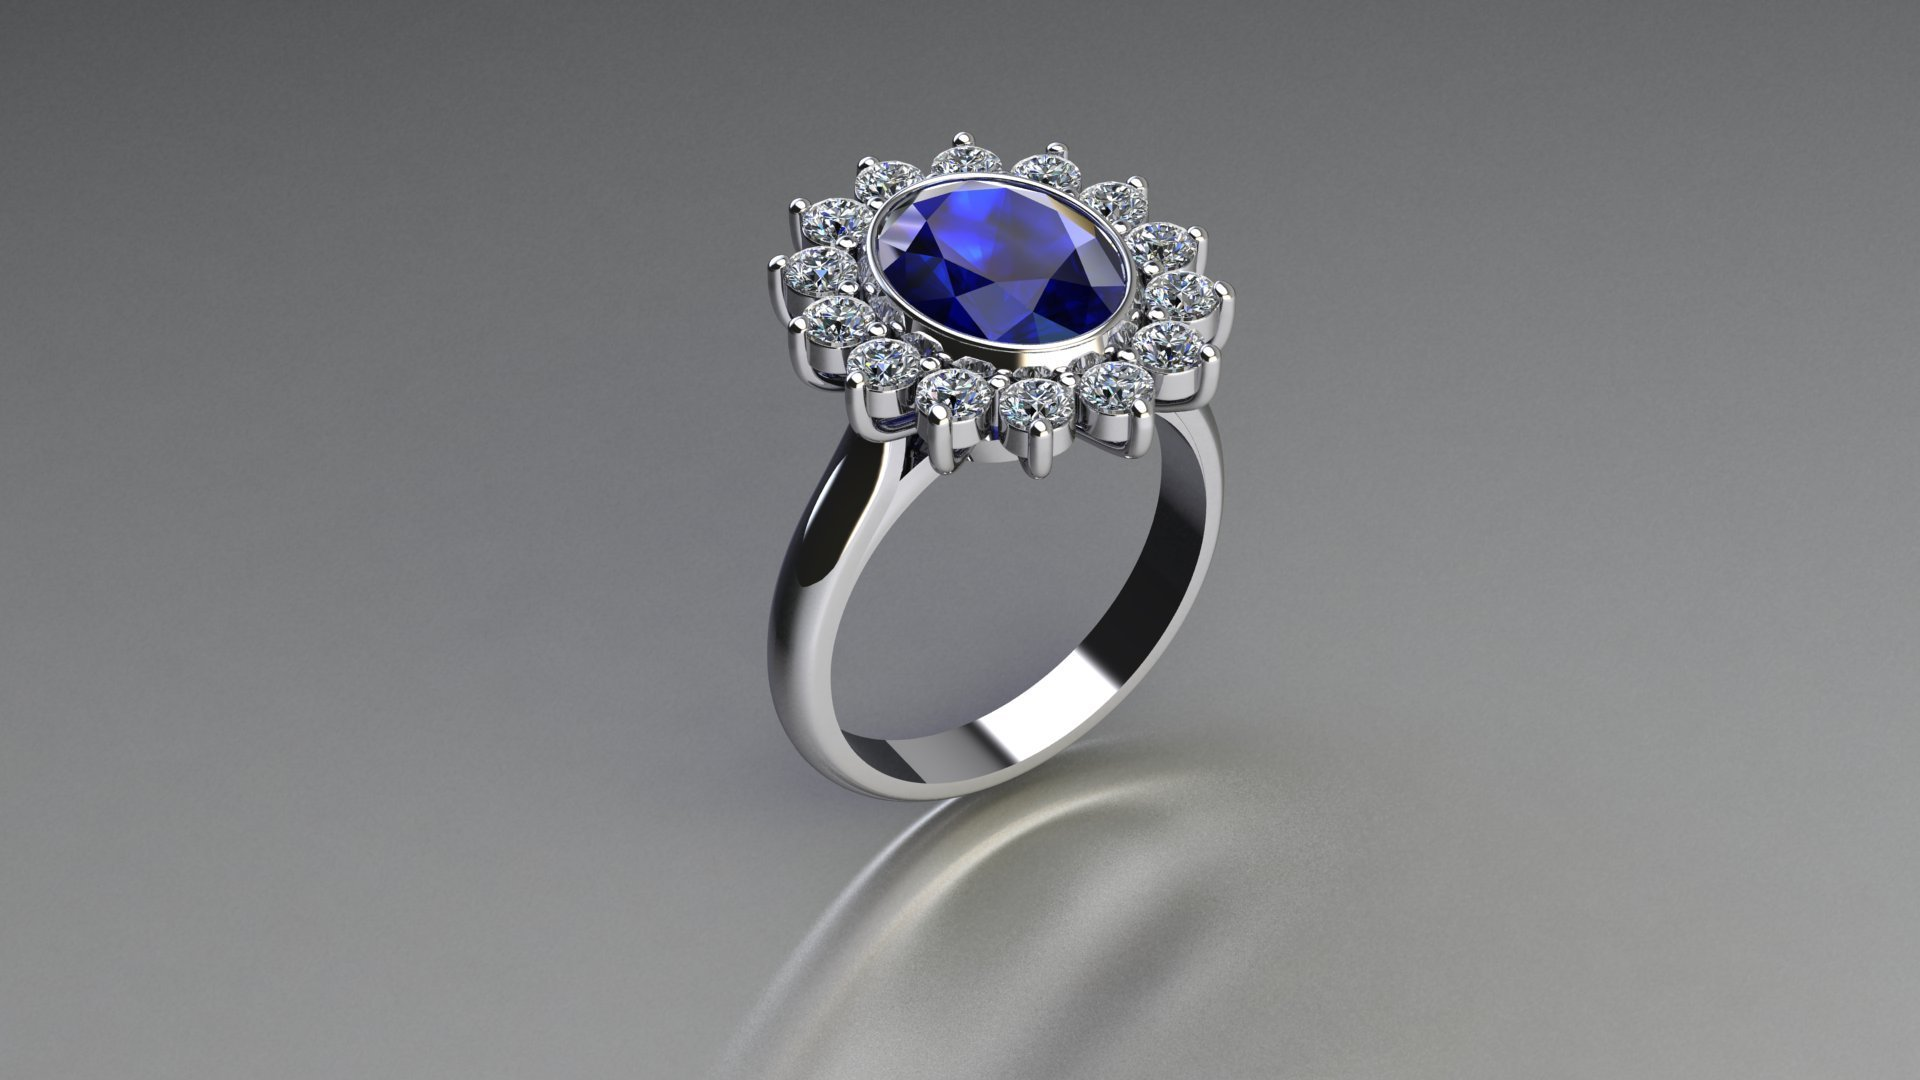 A render of a tanzanite and diamond cluster ring standing